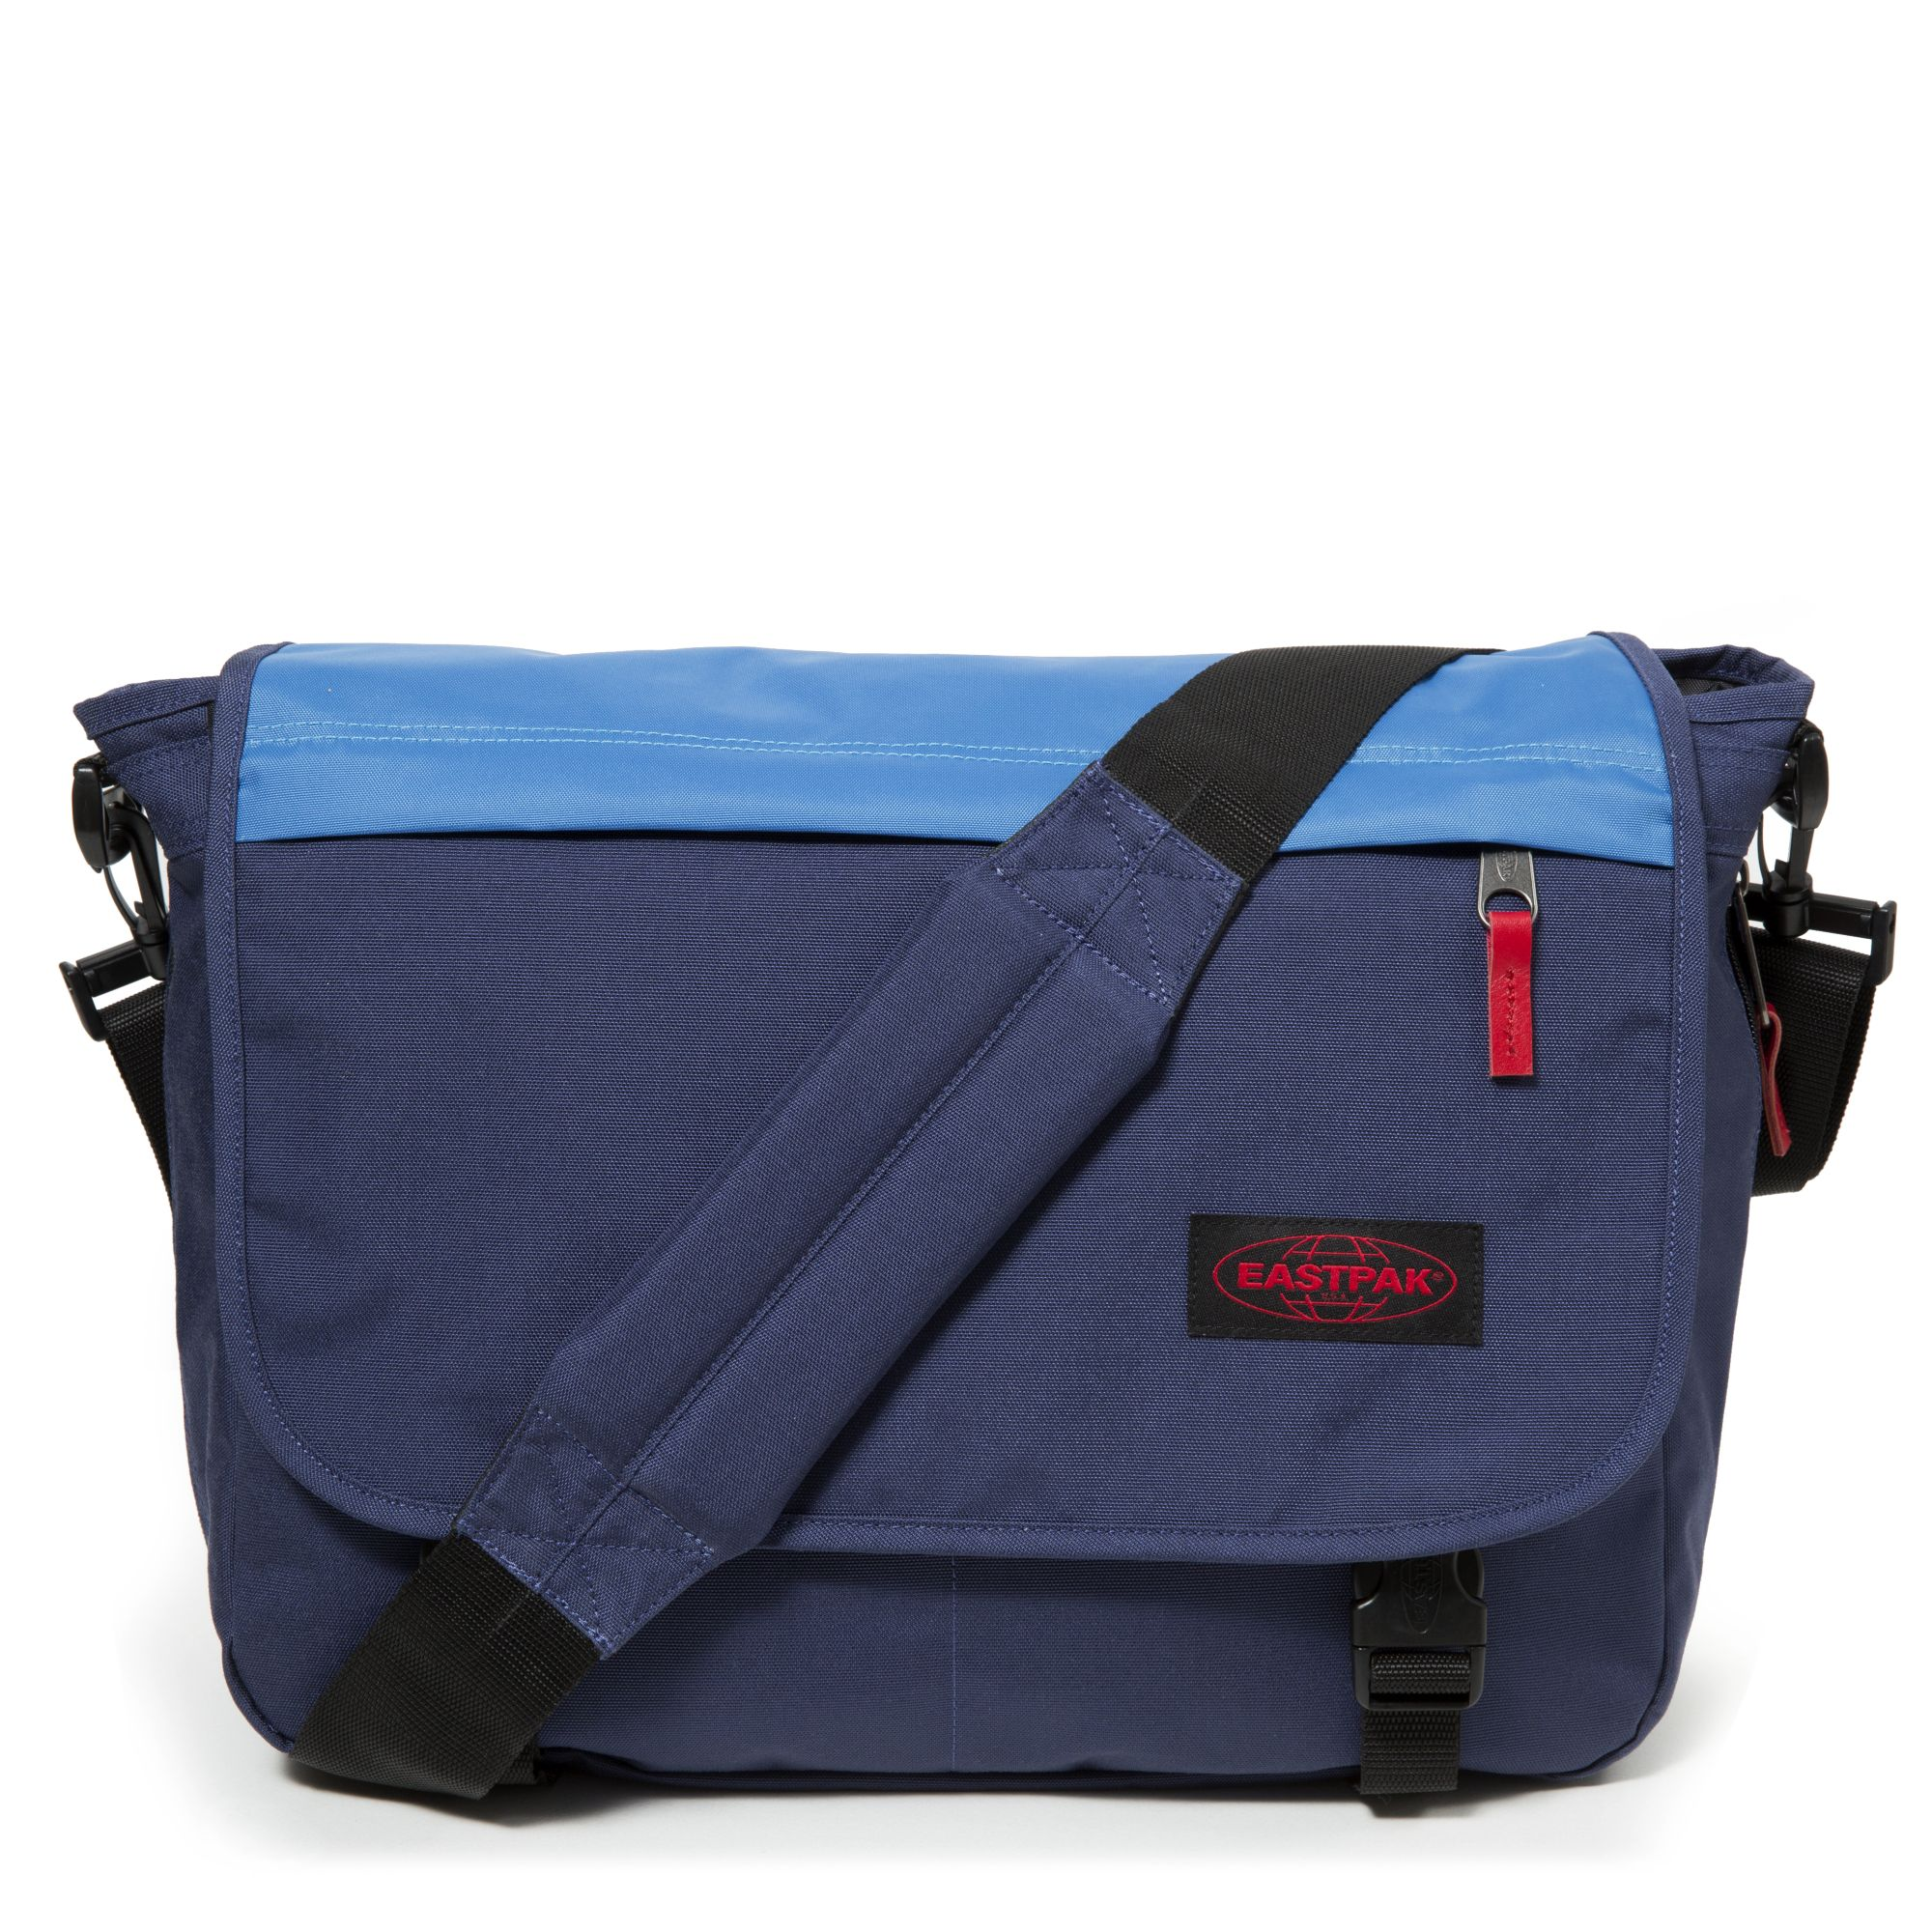 Eastpak Delegate Messenger Bag Blue